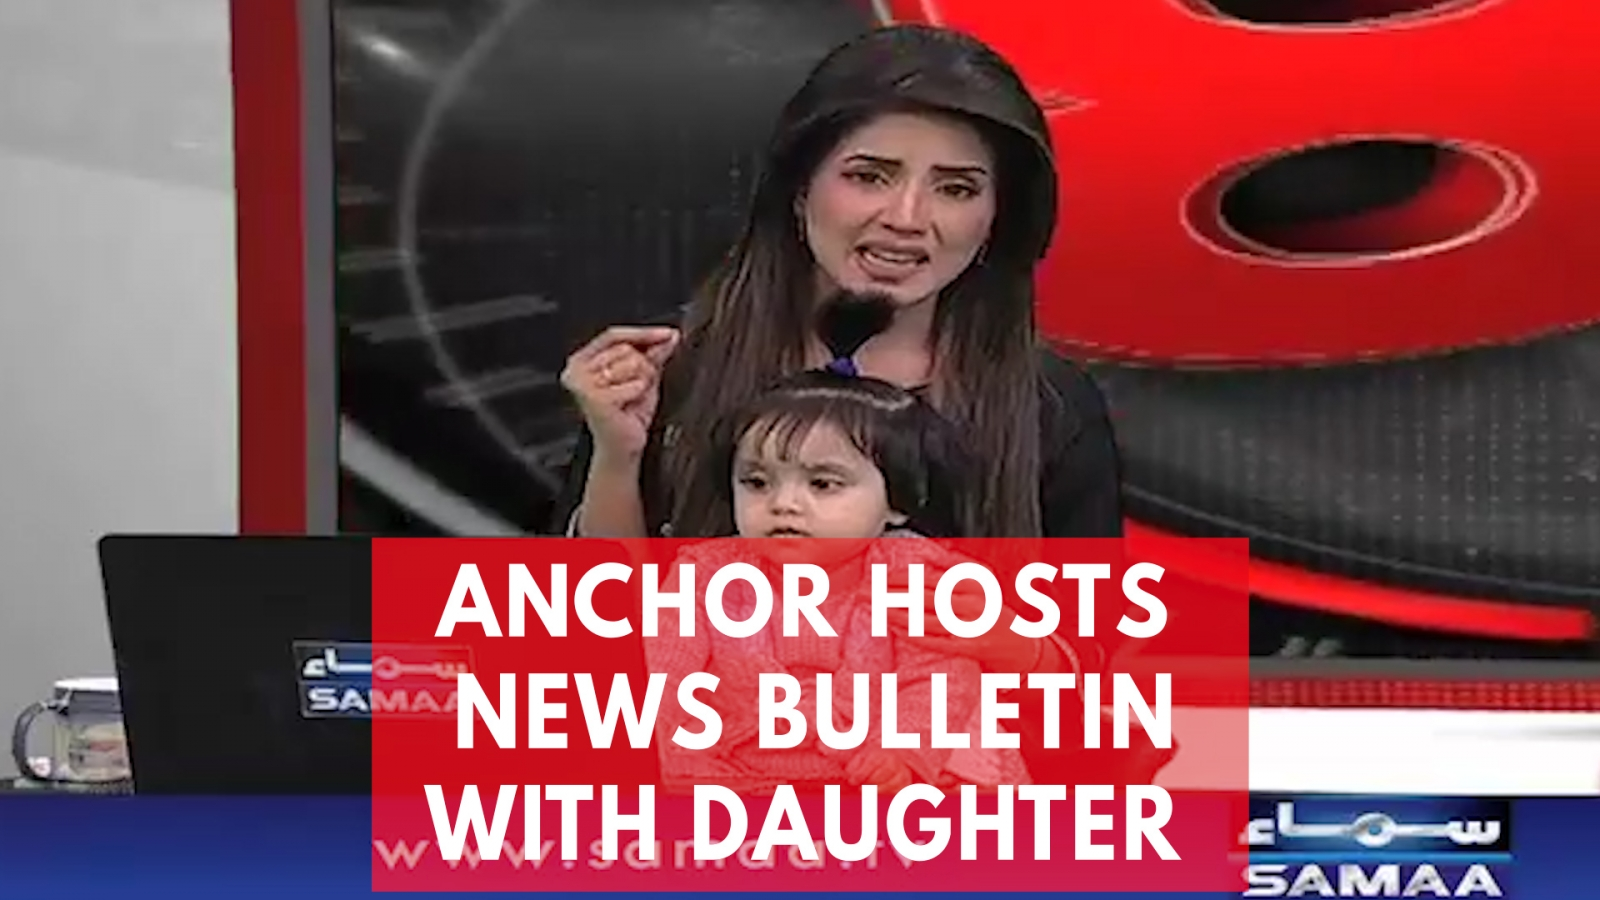 tv-anchor-presents-news-with-daughter-on-her-lap-to-protest-8-year-olds-rape-and-murder